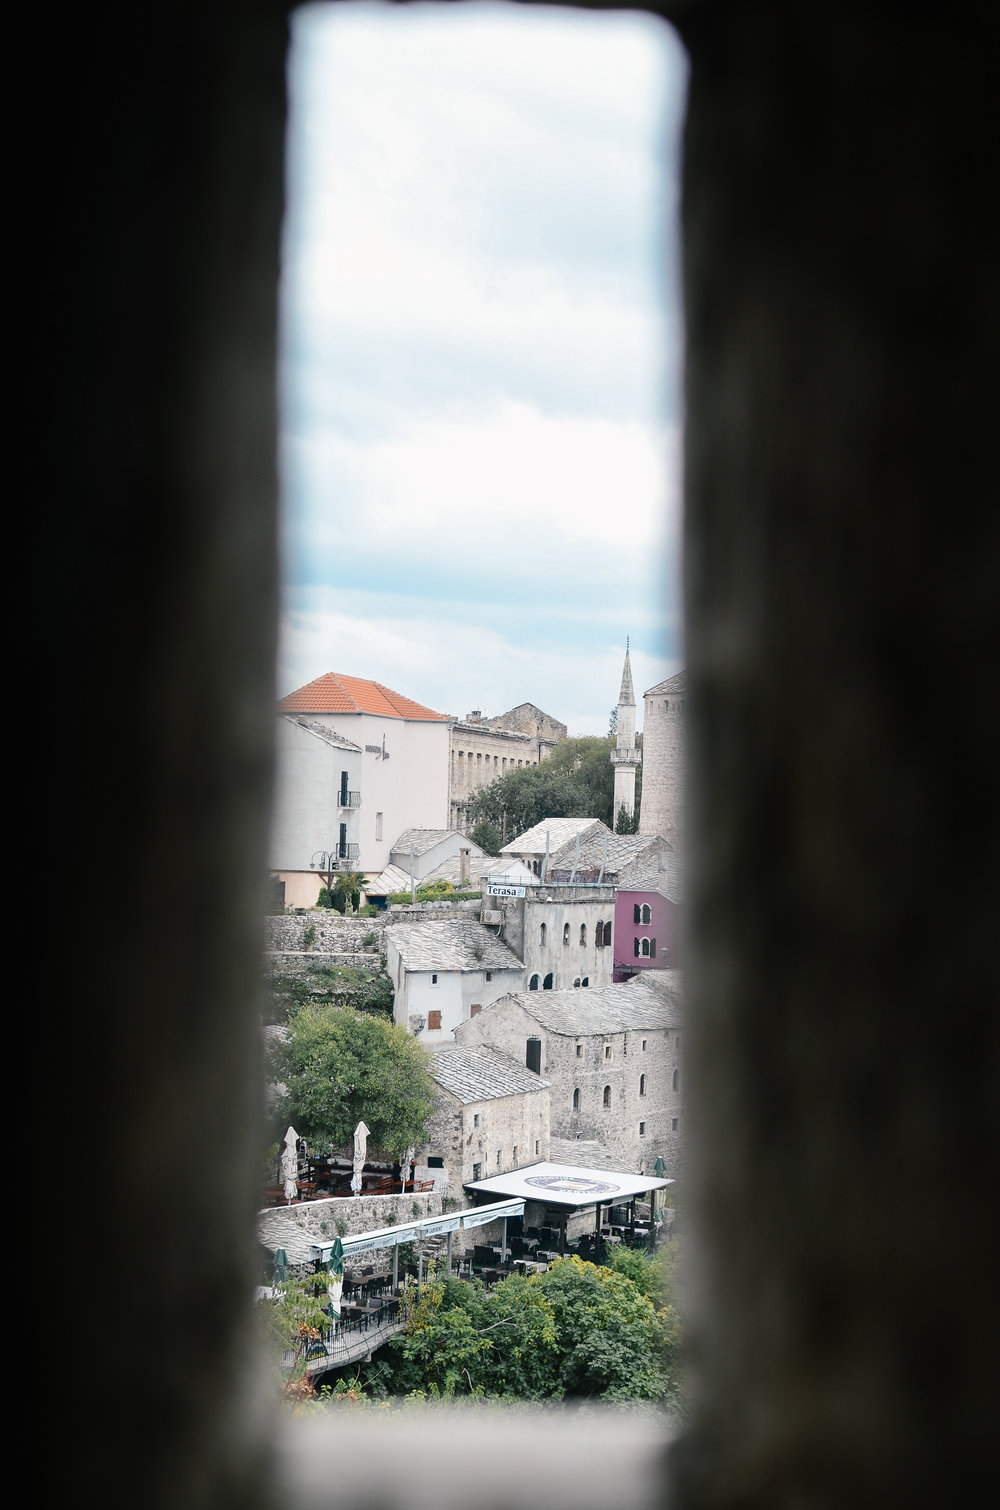 mostar-bosnia-travel-guide-lifeonpine_DSC_3180.jpg